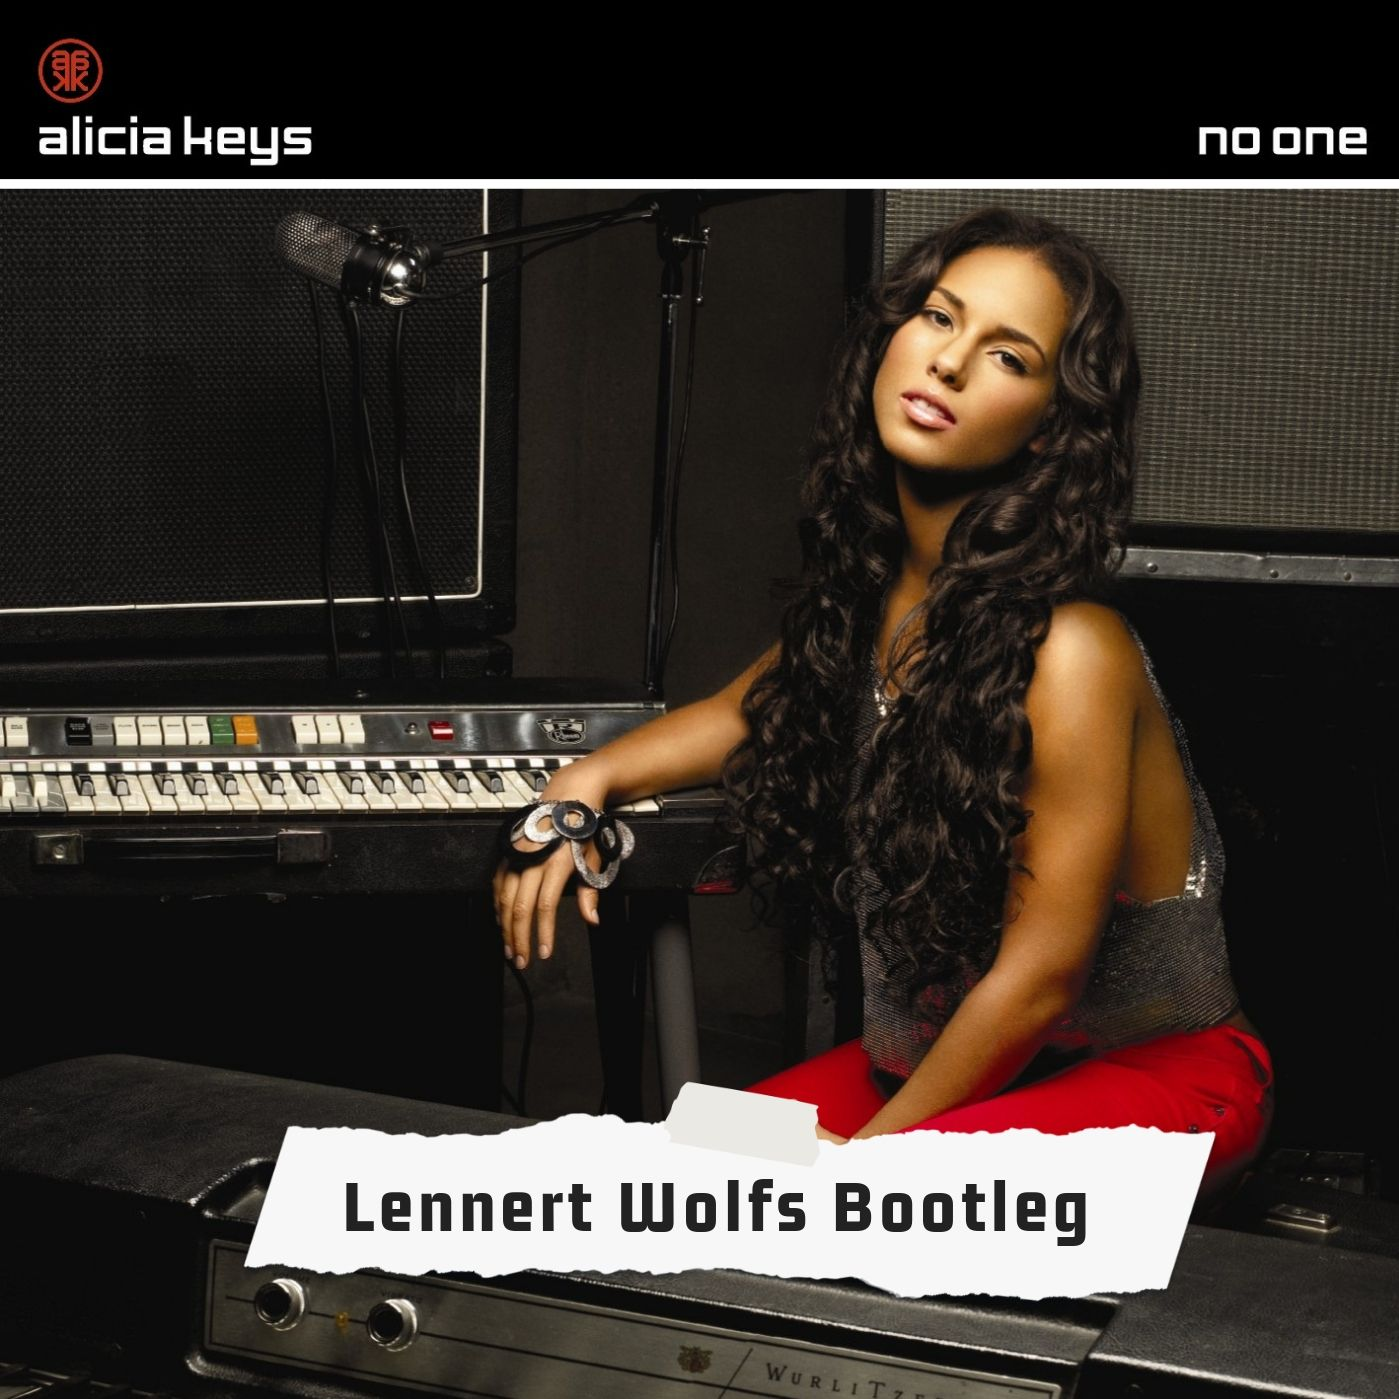 No One (Lennert Wolfs Bootleg) by Alicia Keys | Free Download on